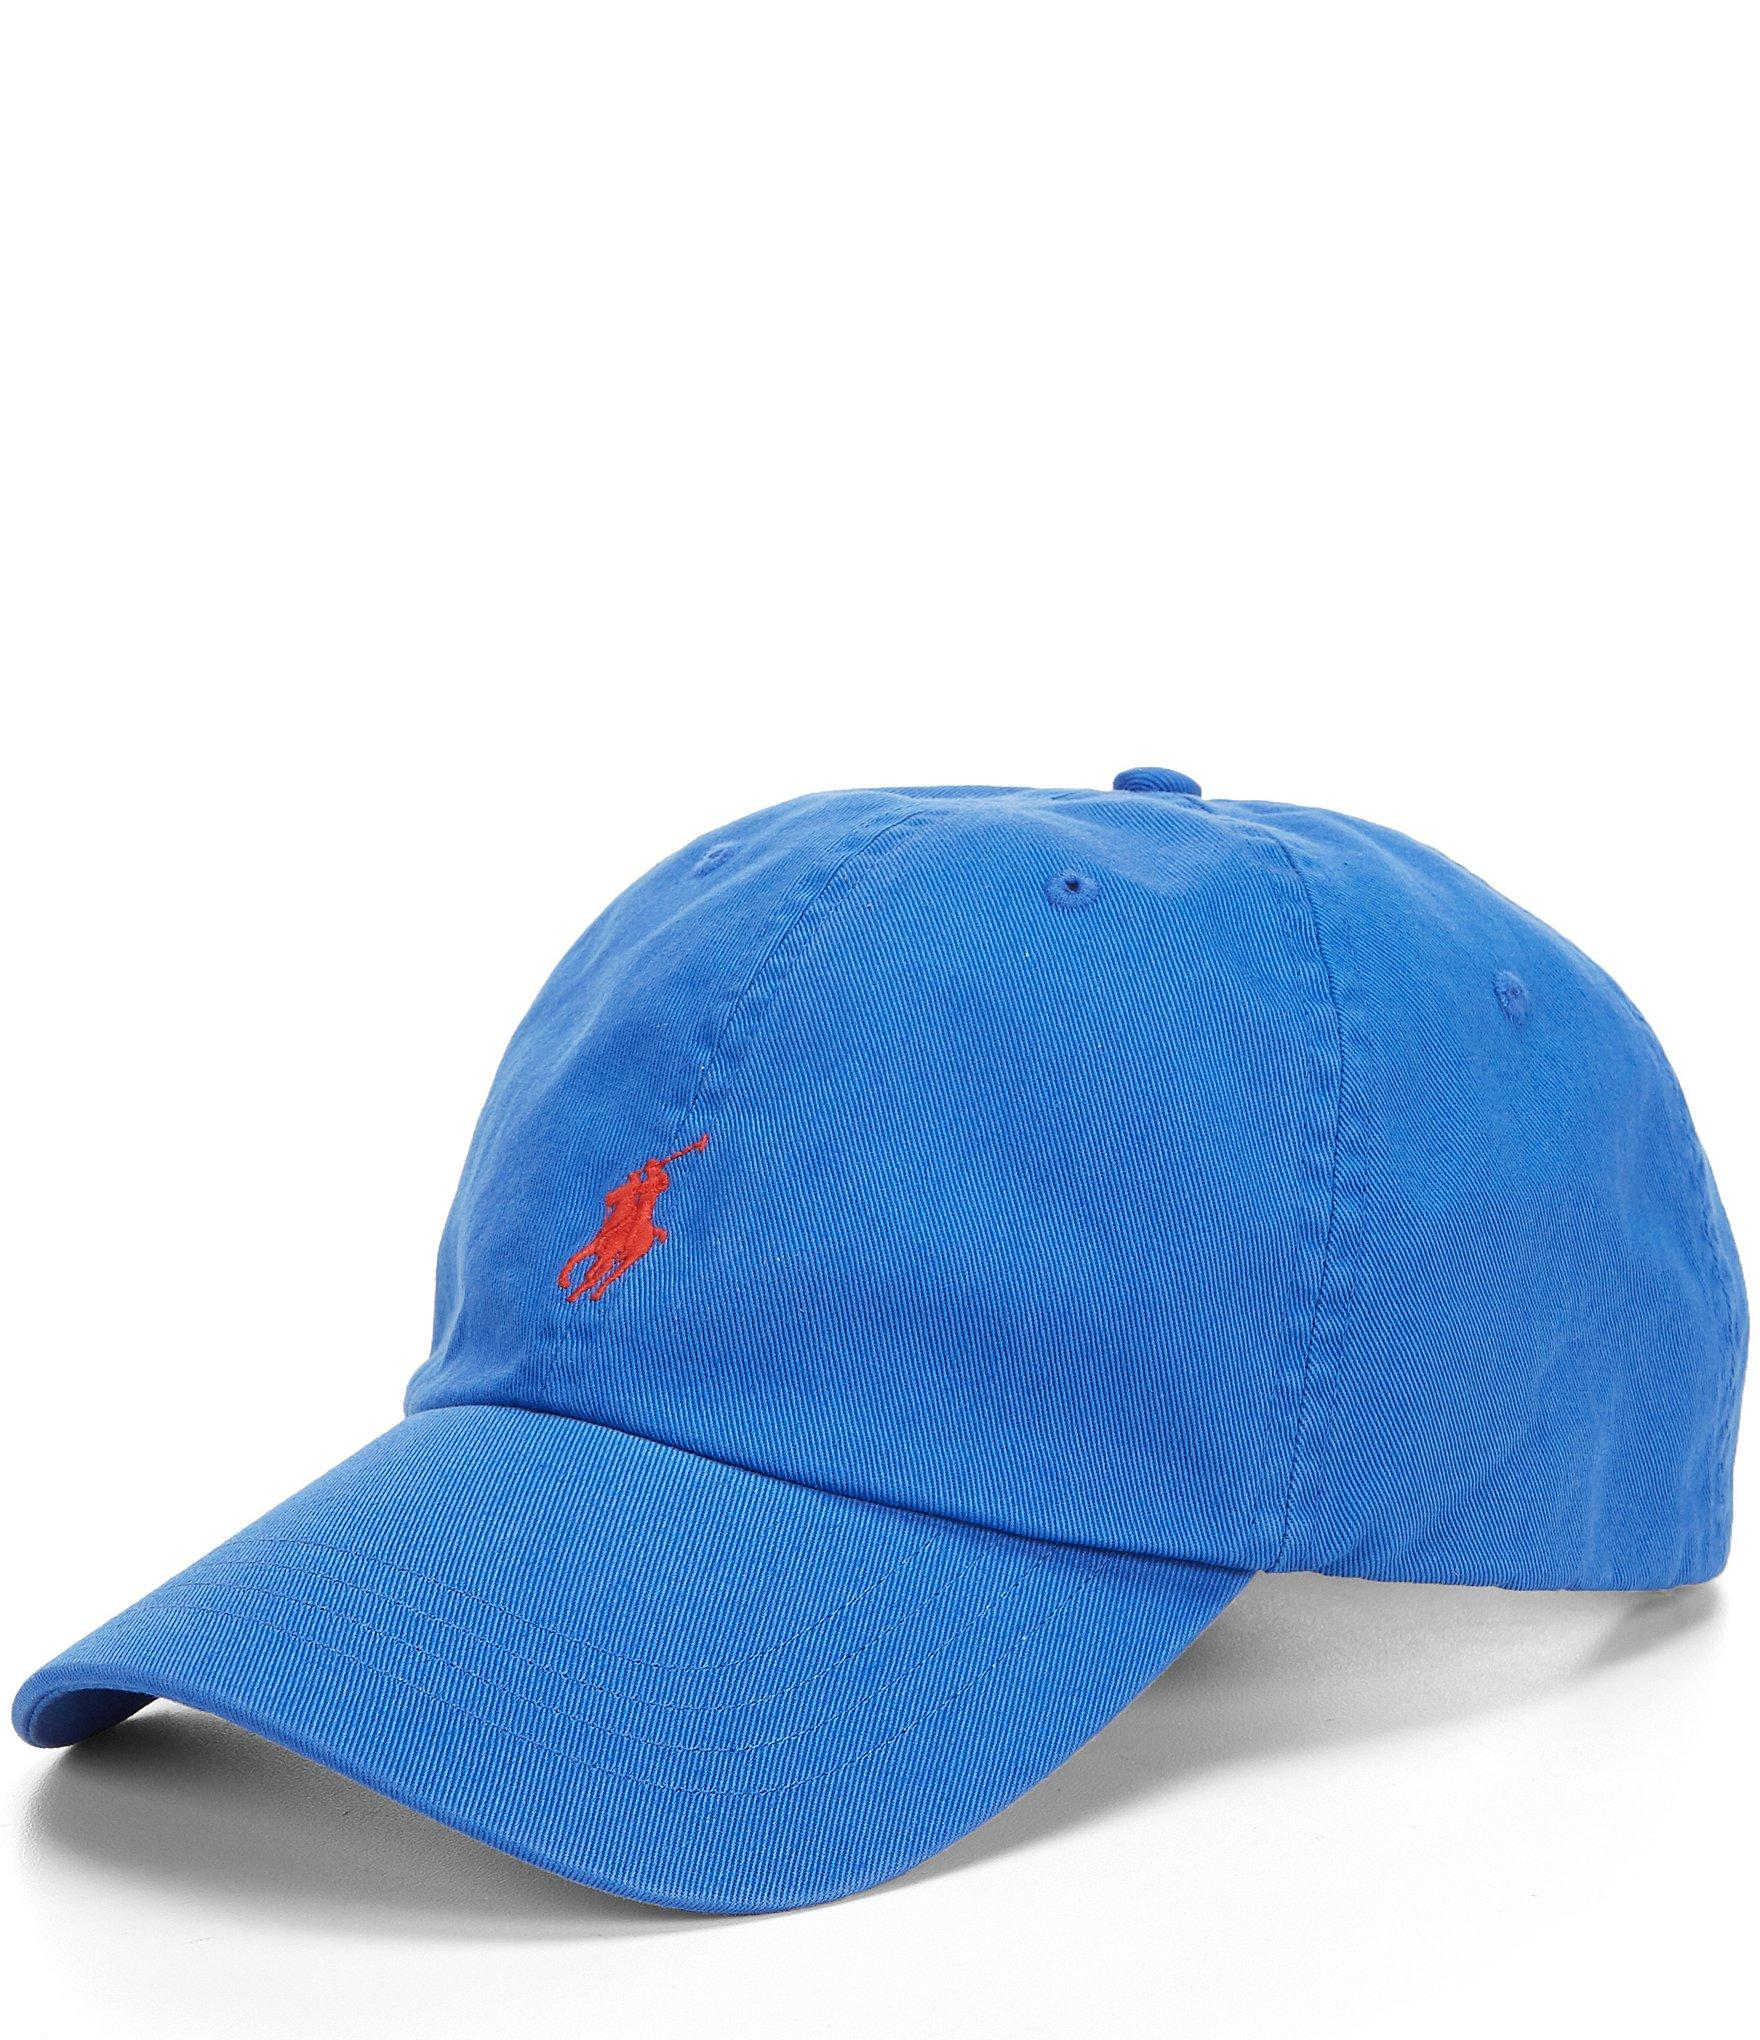 350310ea Lyst - Polo Ralph Lauren Big & Tall Cotton Chino Baseball Cap in ...